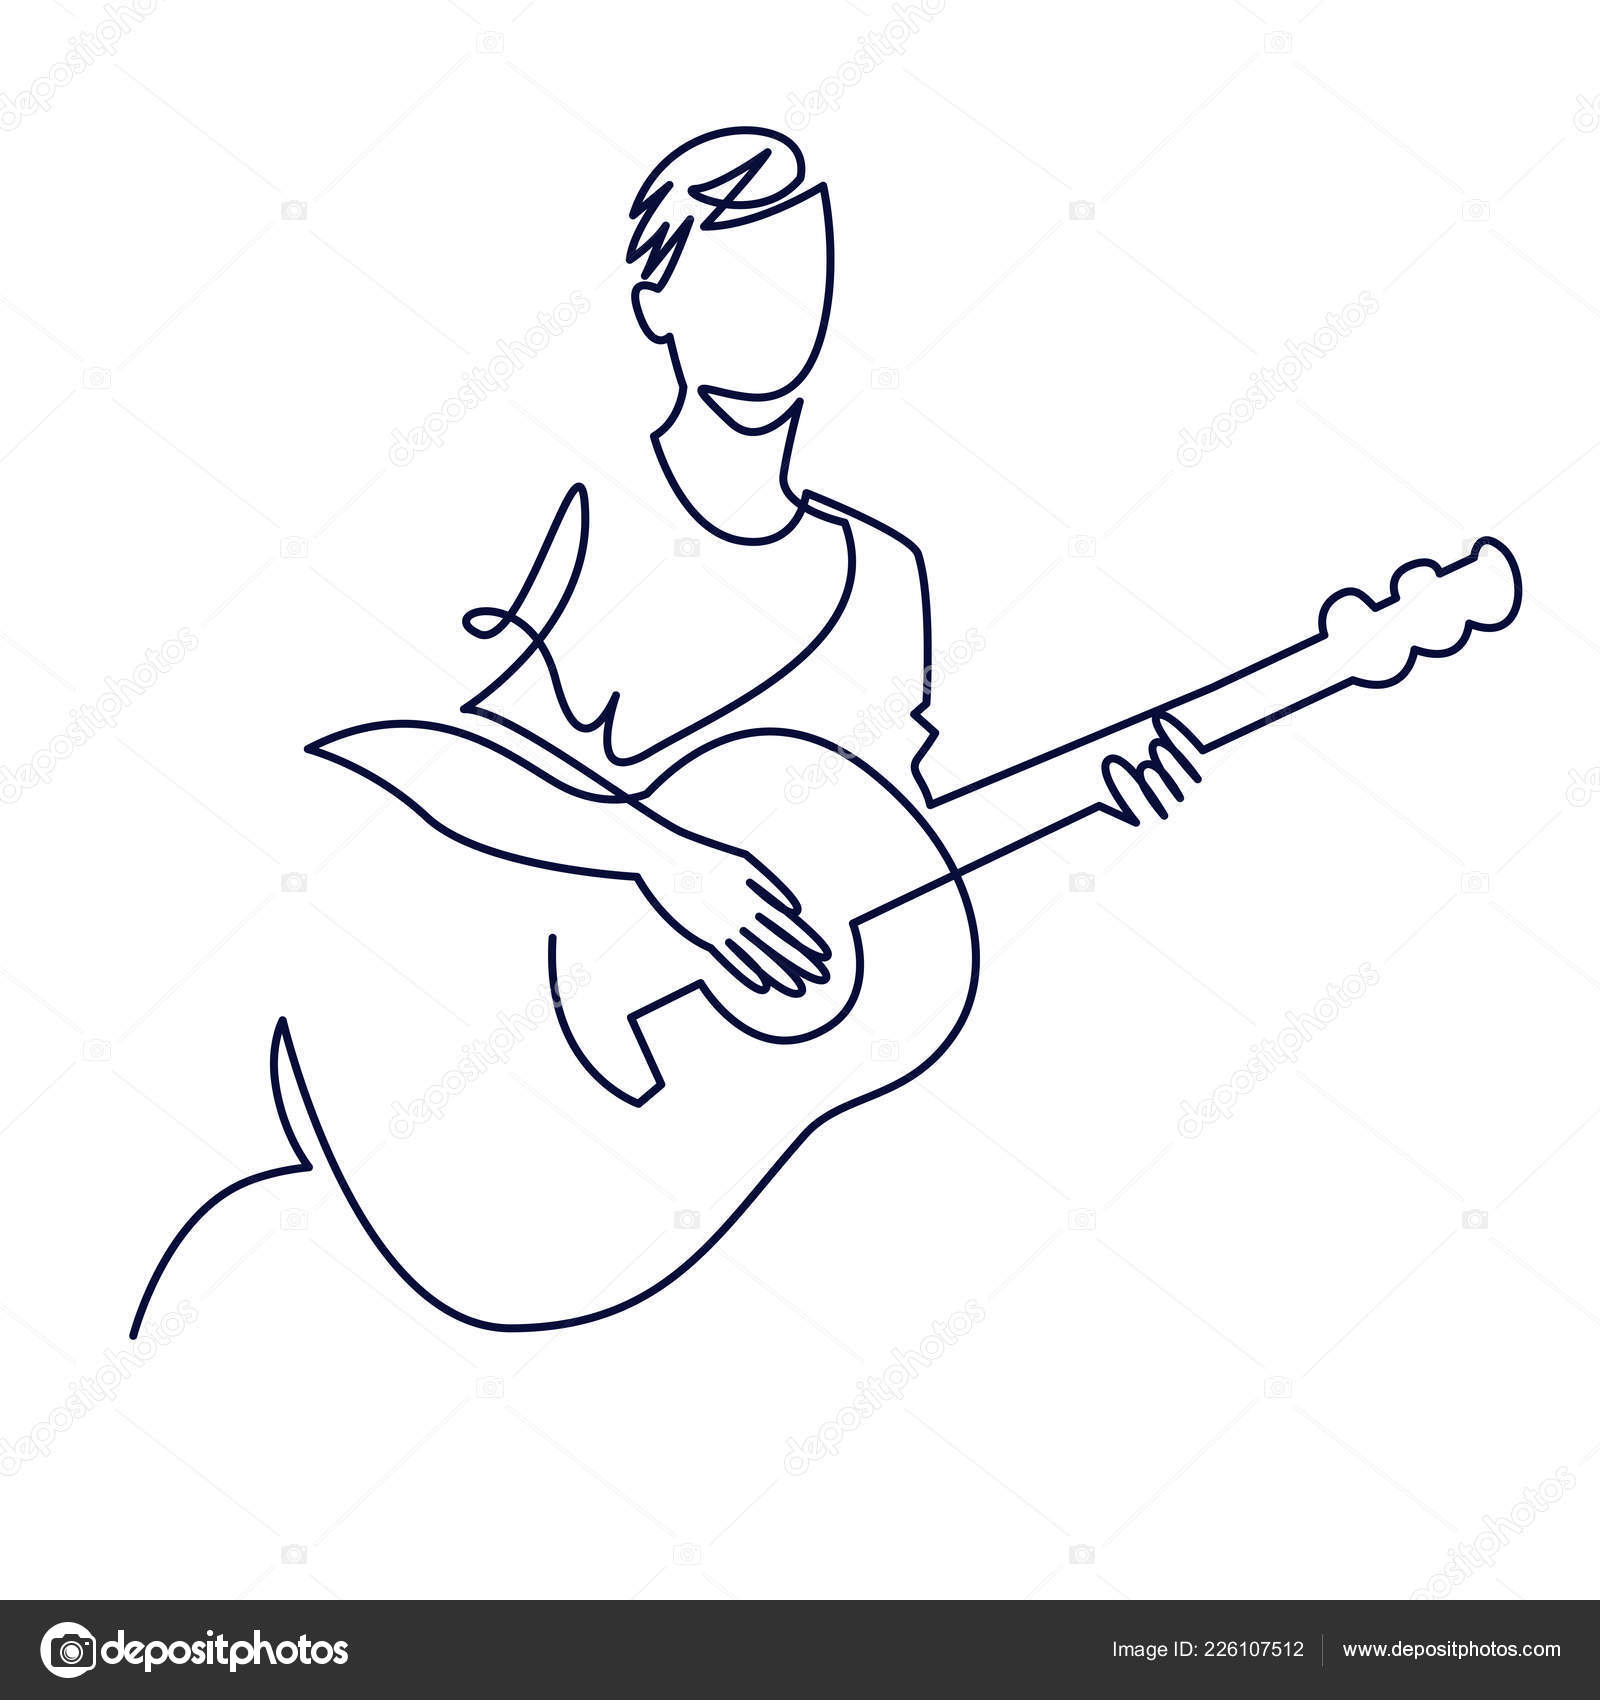 Continuous Line Drawing Of Musician Plays Acoustic Guitar Vector